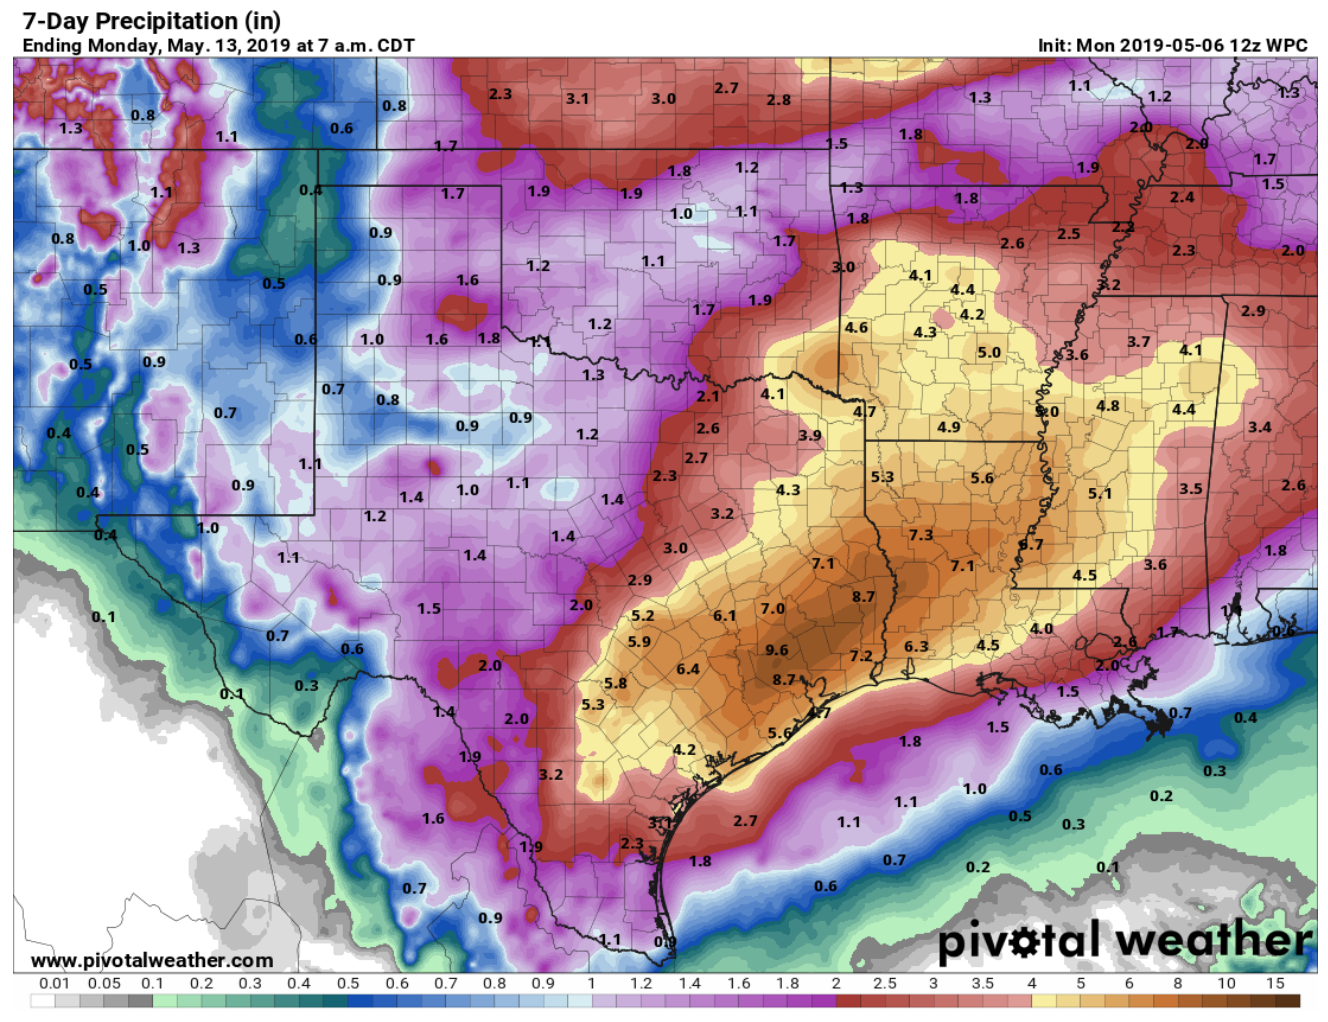 pivotalweather map showing forecast presipitation this week, with 5-8 inches in immediate Brazos river watershed